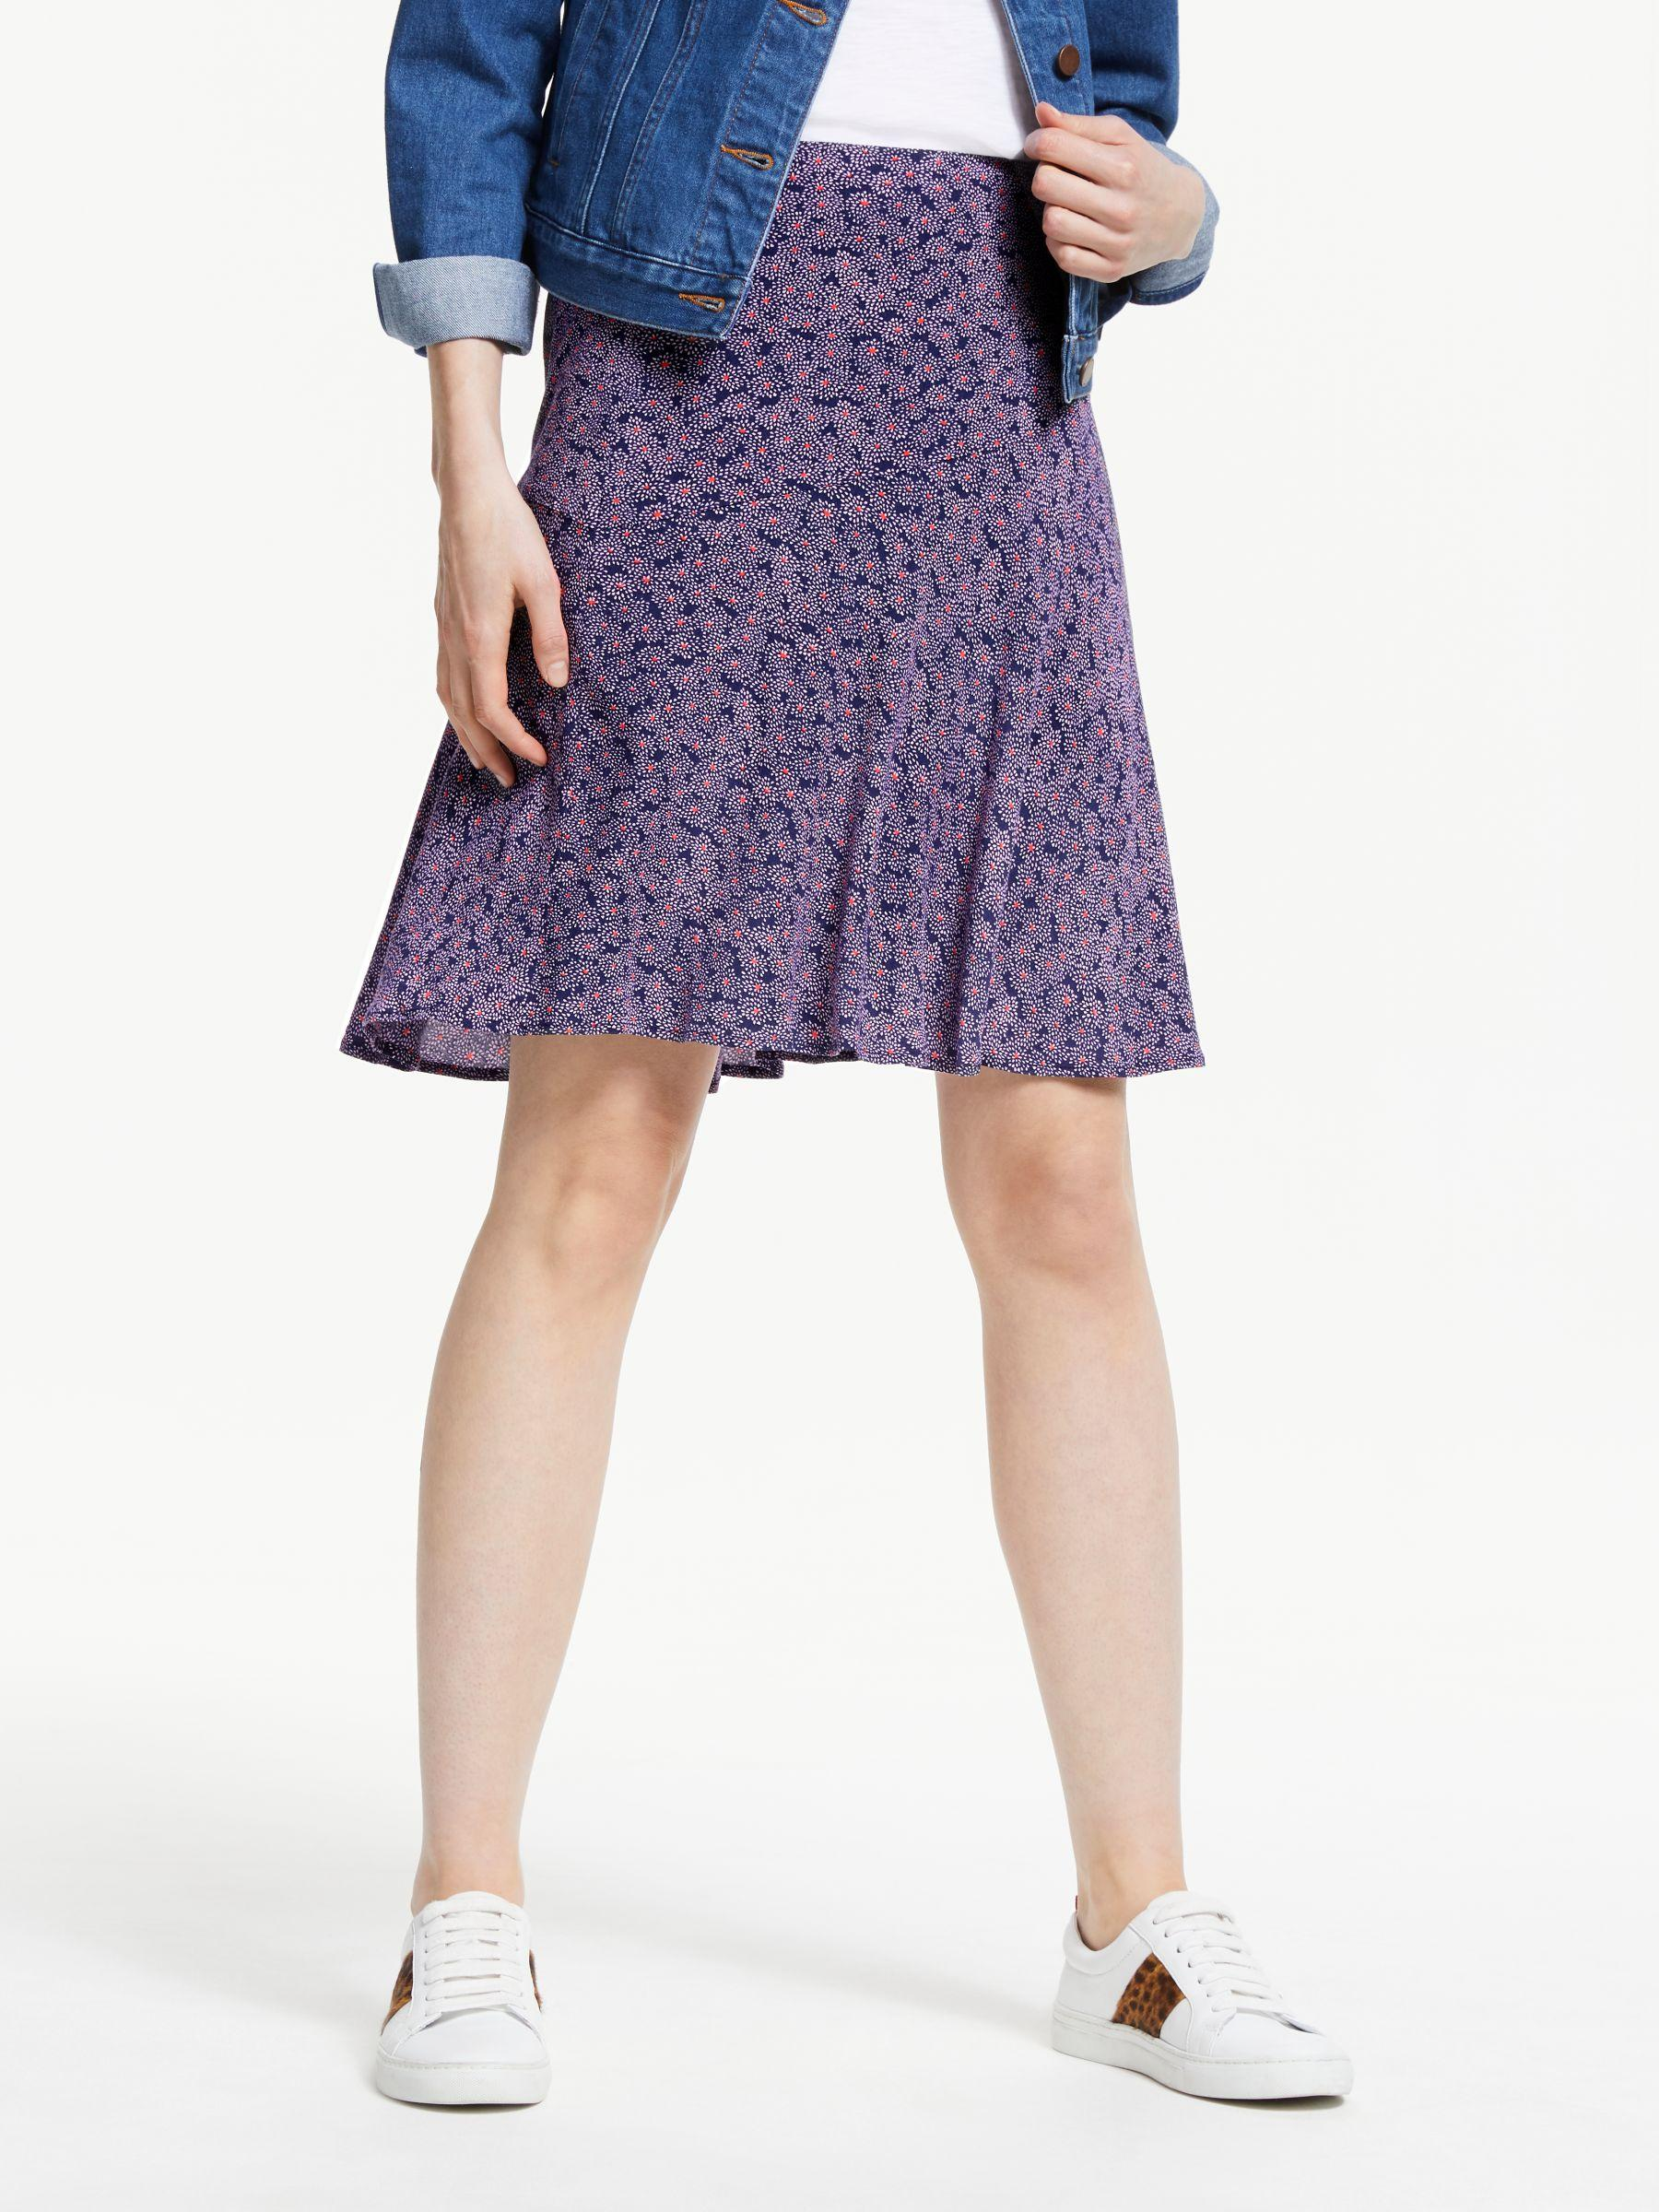 c46f60652 Boden. Women's Blue Virginia Print Skirt. £55 From John Lewis and Partners